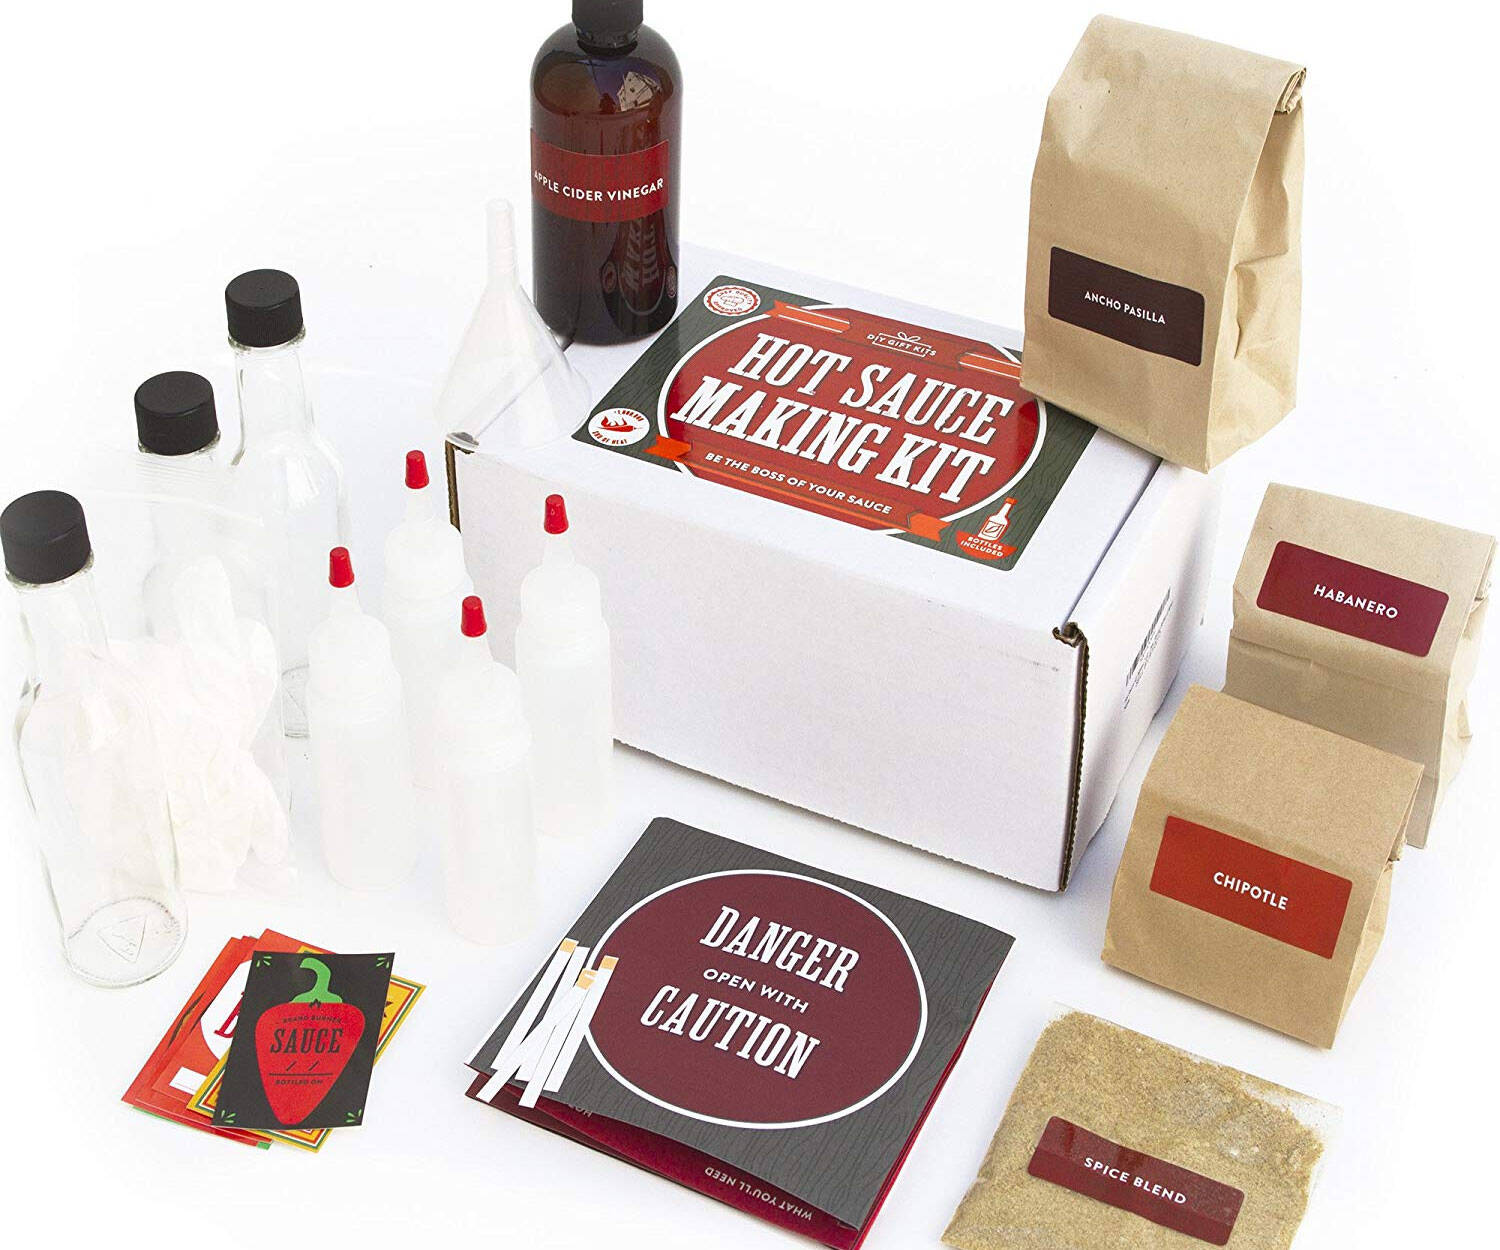 Make Your Own Hot Sauce Kit - http://coolthings.us